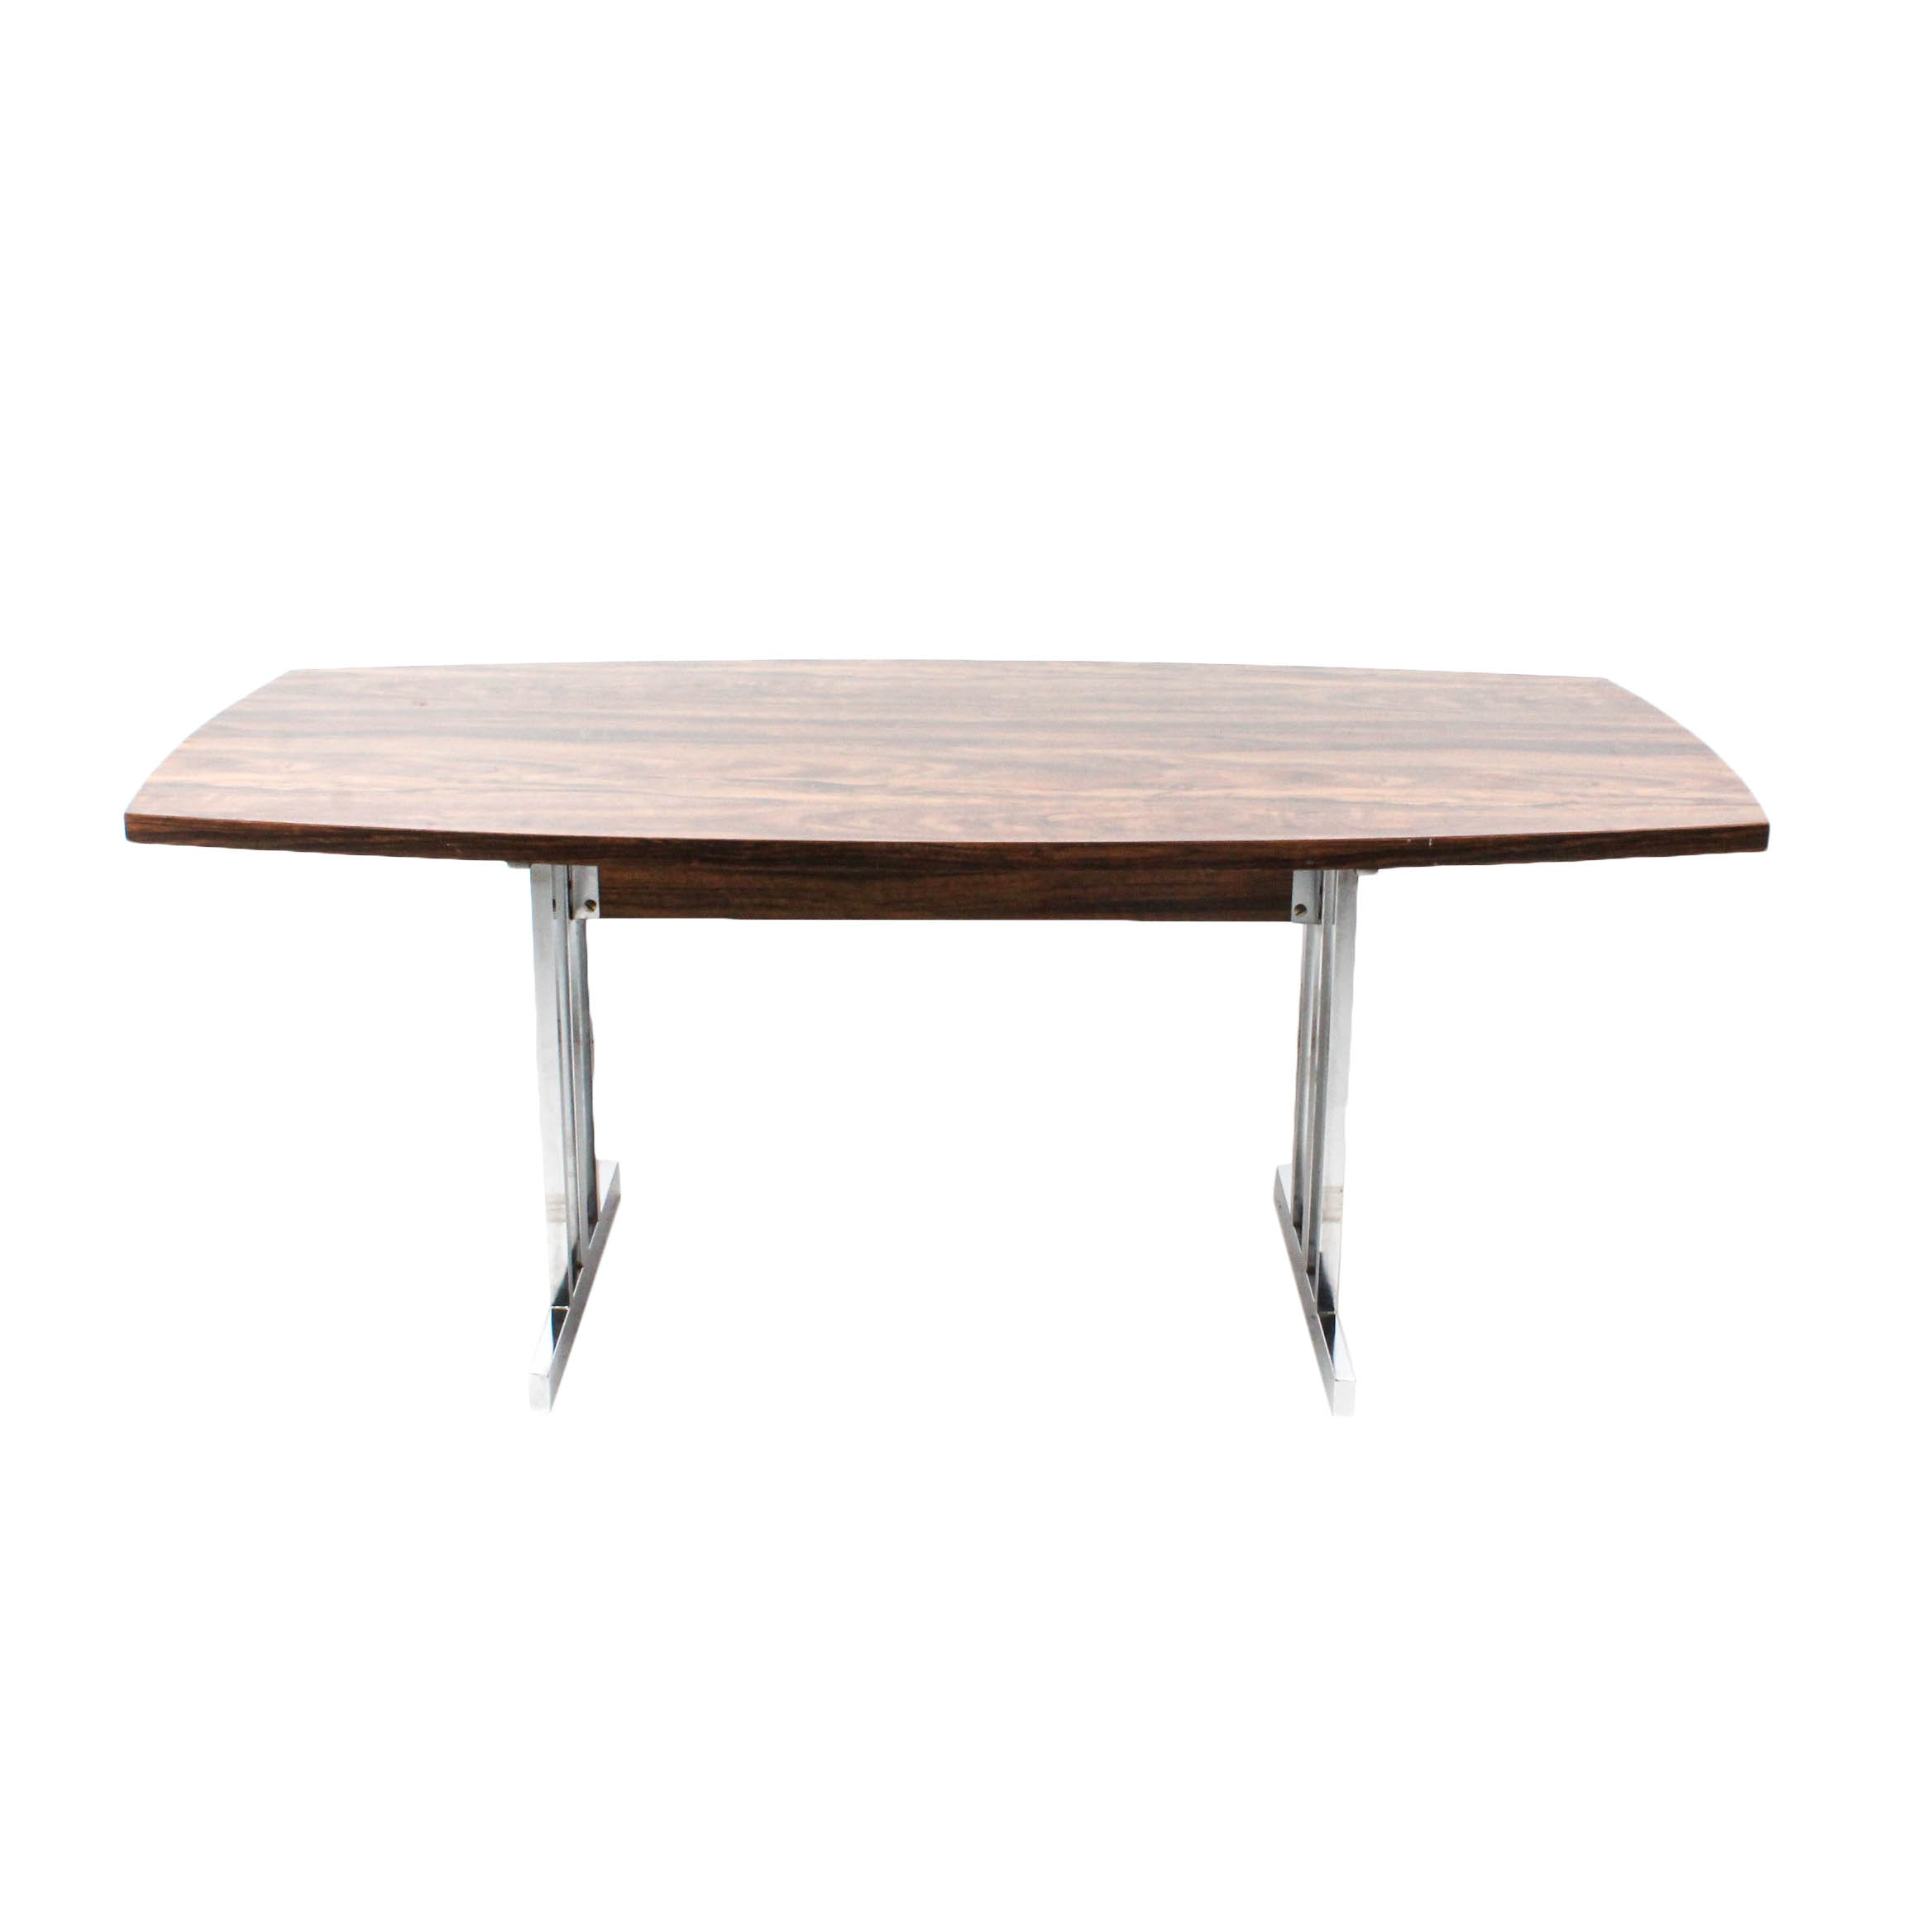 Modernist Walnut Laminate and Chrome Dining Table